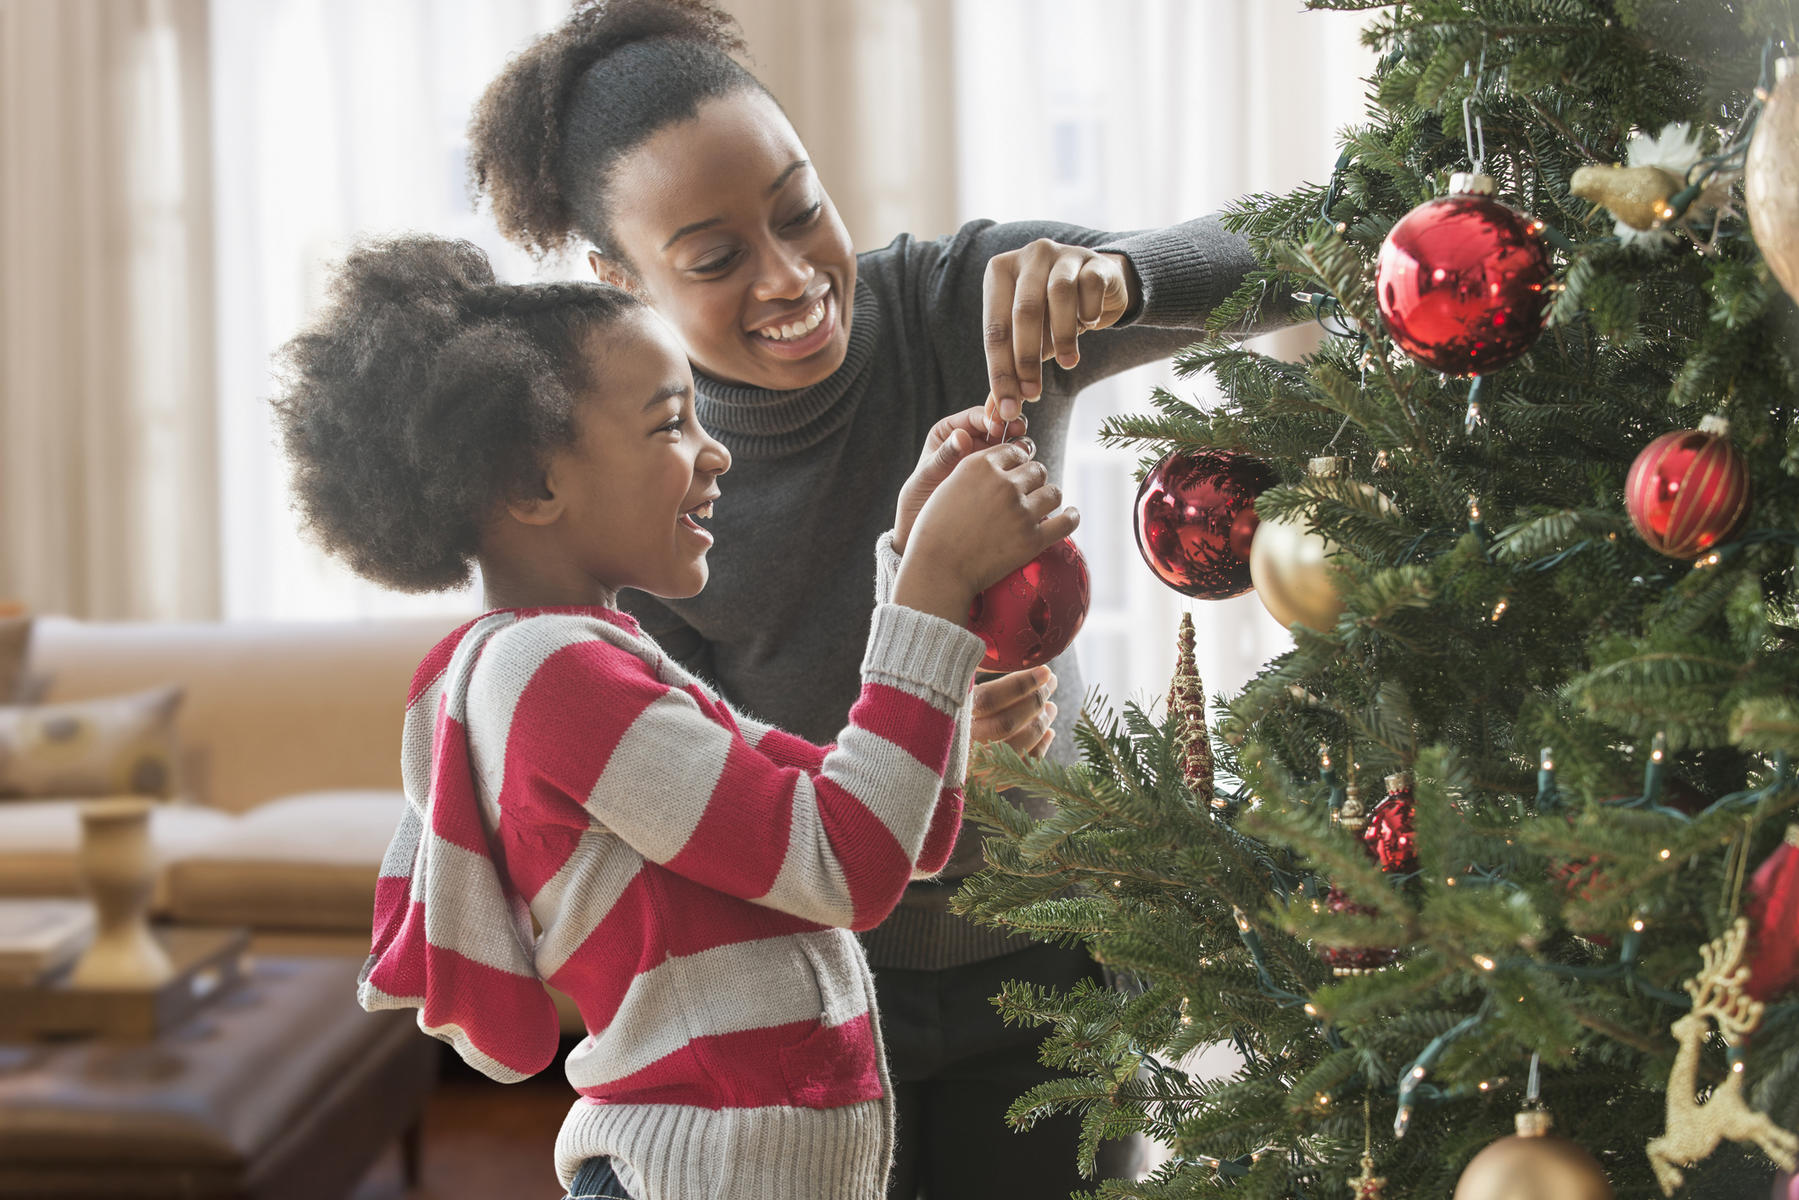 10 Ways to Make Your Kids Feel Extra Special This Holiday Season